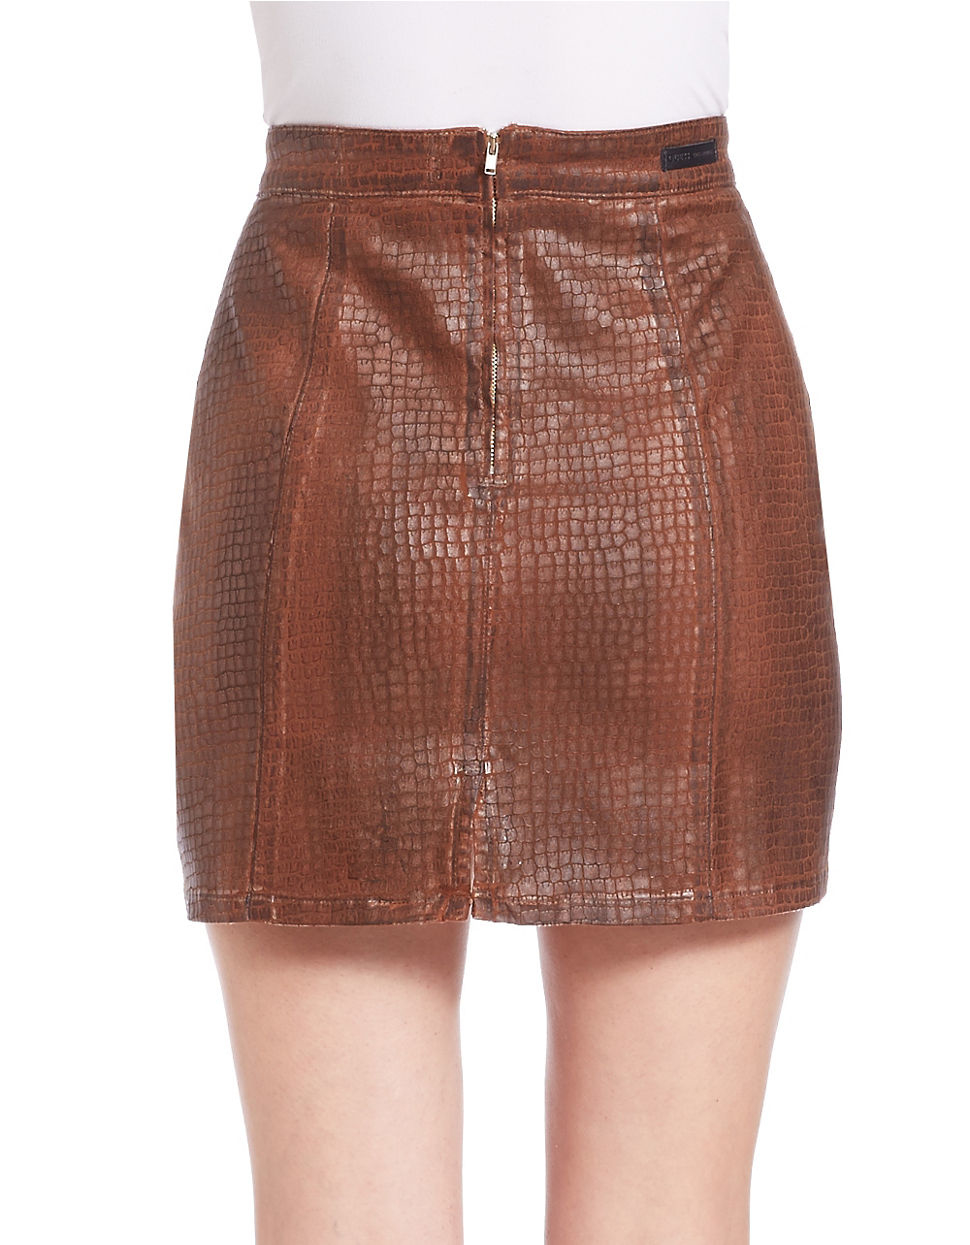 Guess Croc-embossed Faux Leather Skirt in Brown | Lyst